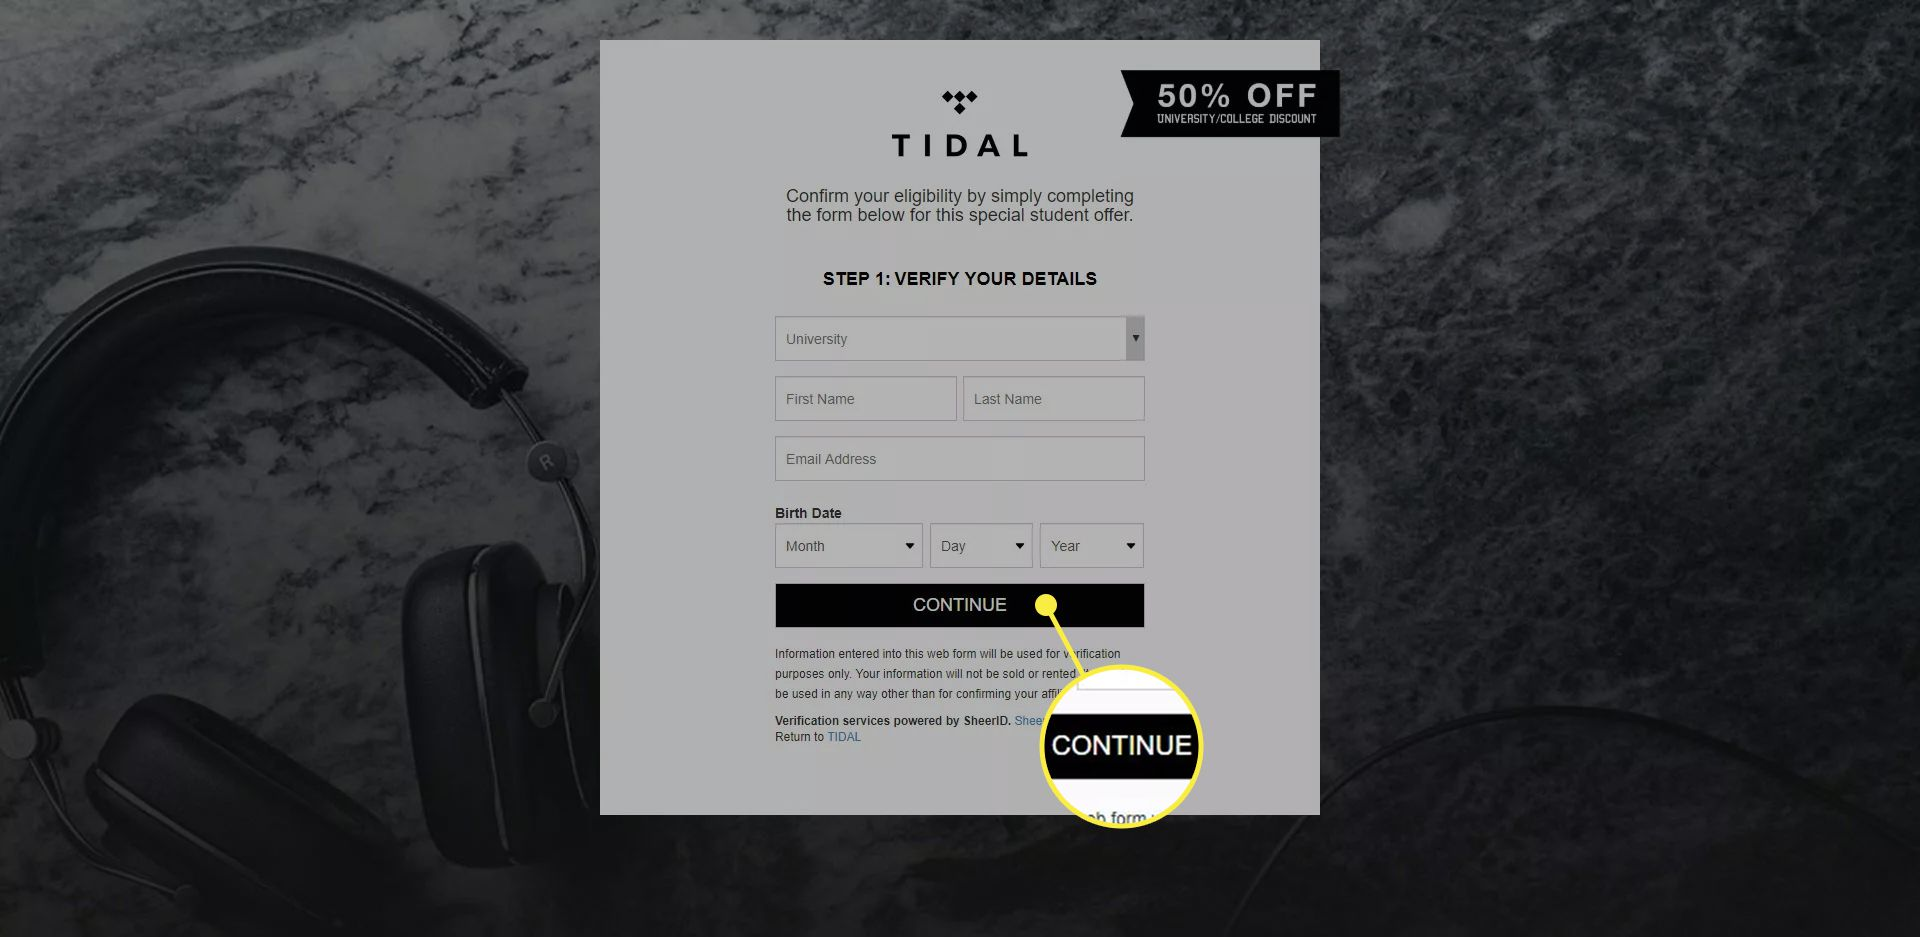 The Tidal student discount form